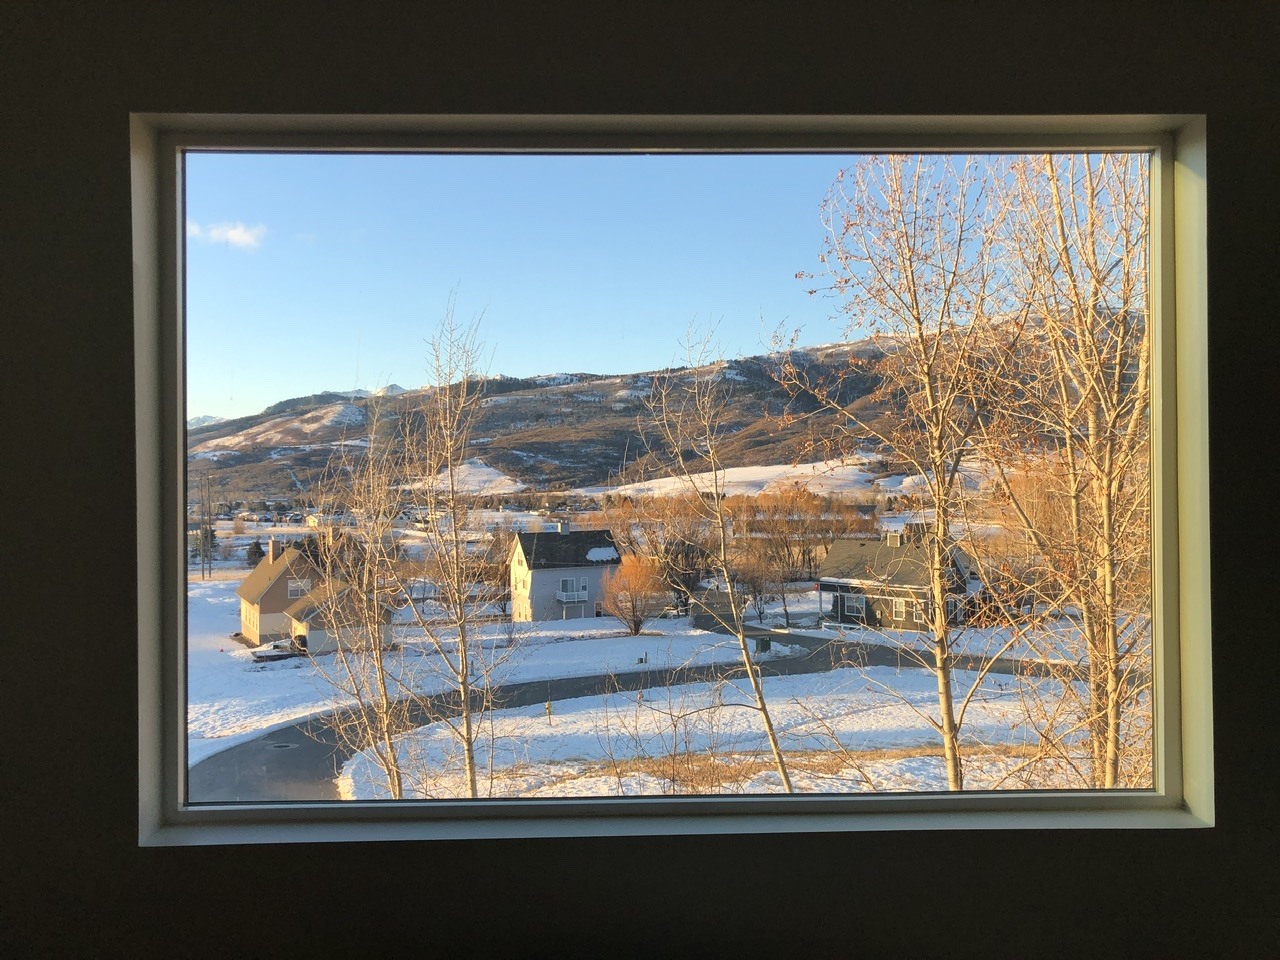 A view out a large window, overlooking sunlit trees and snow, framed by a deep set window